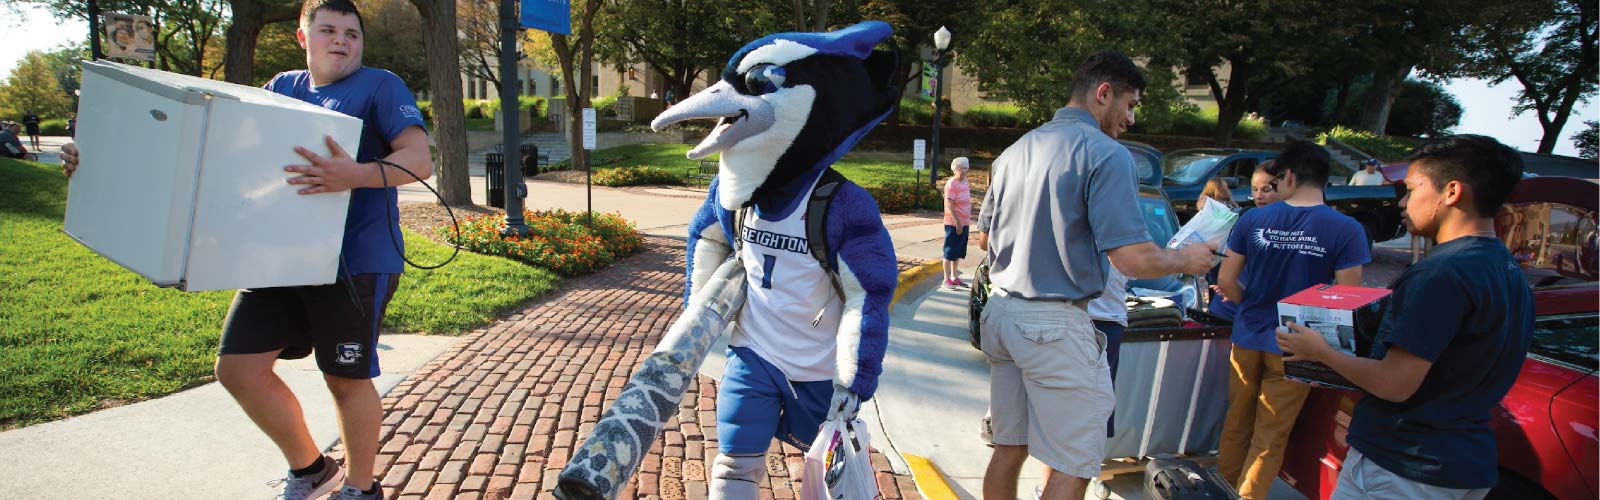 male student moving into Creighton